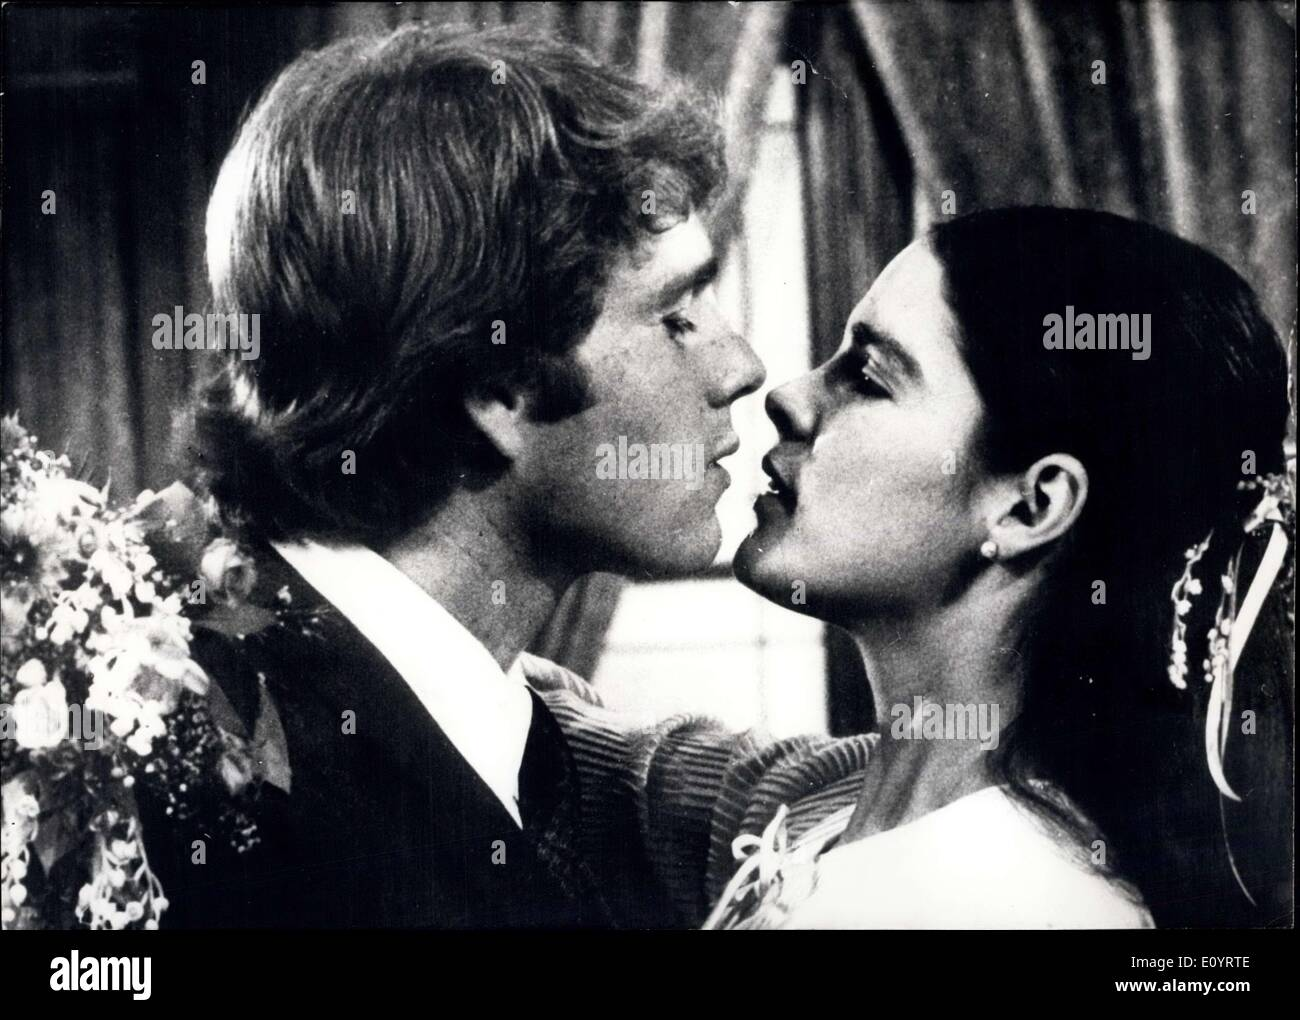 Apr. 23, 1971 - Love Story'' film of the year: The film which is to be the most lucrative one of all times and is even to outrun the best film so far ''Gone by the wind'' is simply called ''Love Story''. 'Love Story' is the story of a young man who marries an Italian girl against the will of his father. She has to die in a tragic way and dies in his arms. Besides the memories he has only a ticket to Paris and much money of his rich father who forgives him, no, after his wife has died - Stock Image